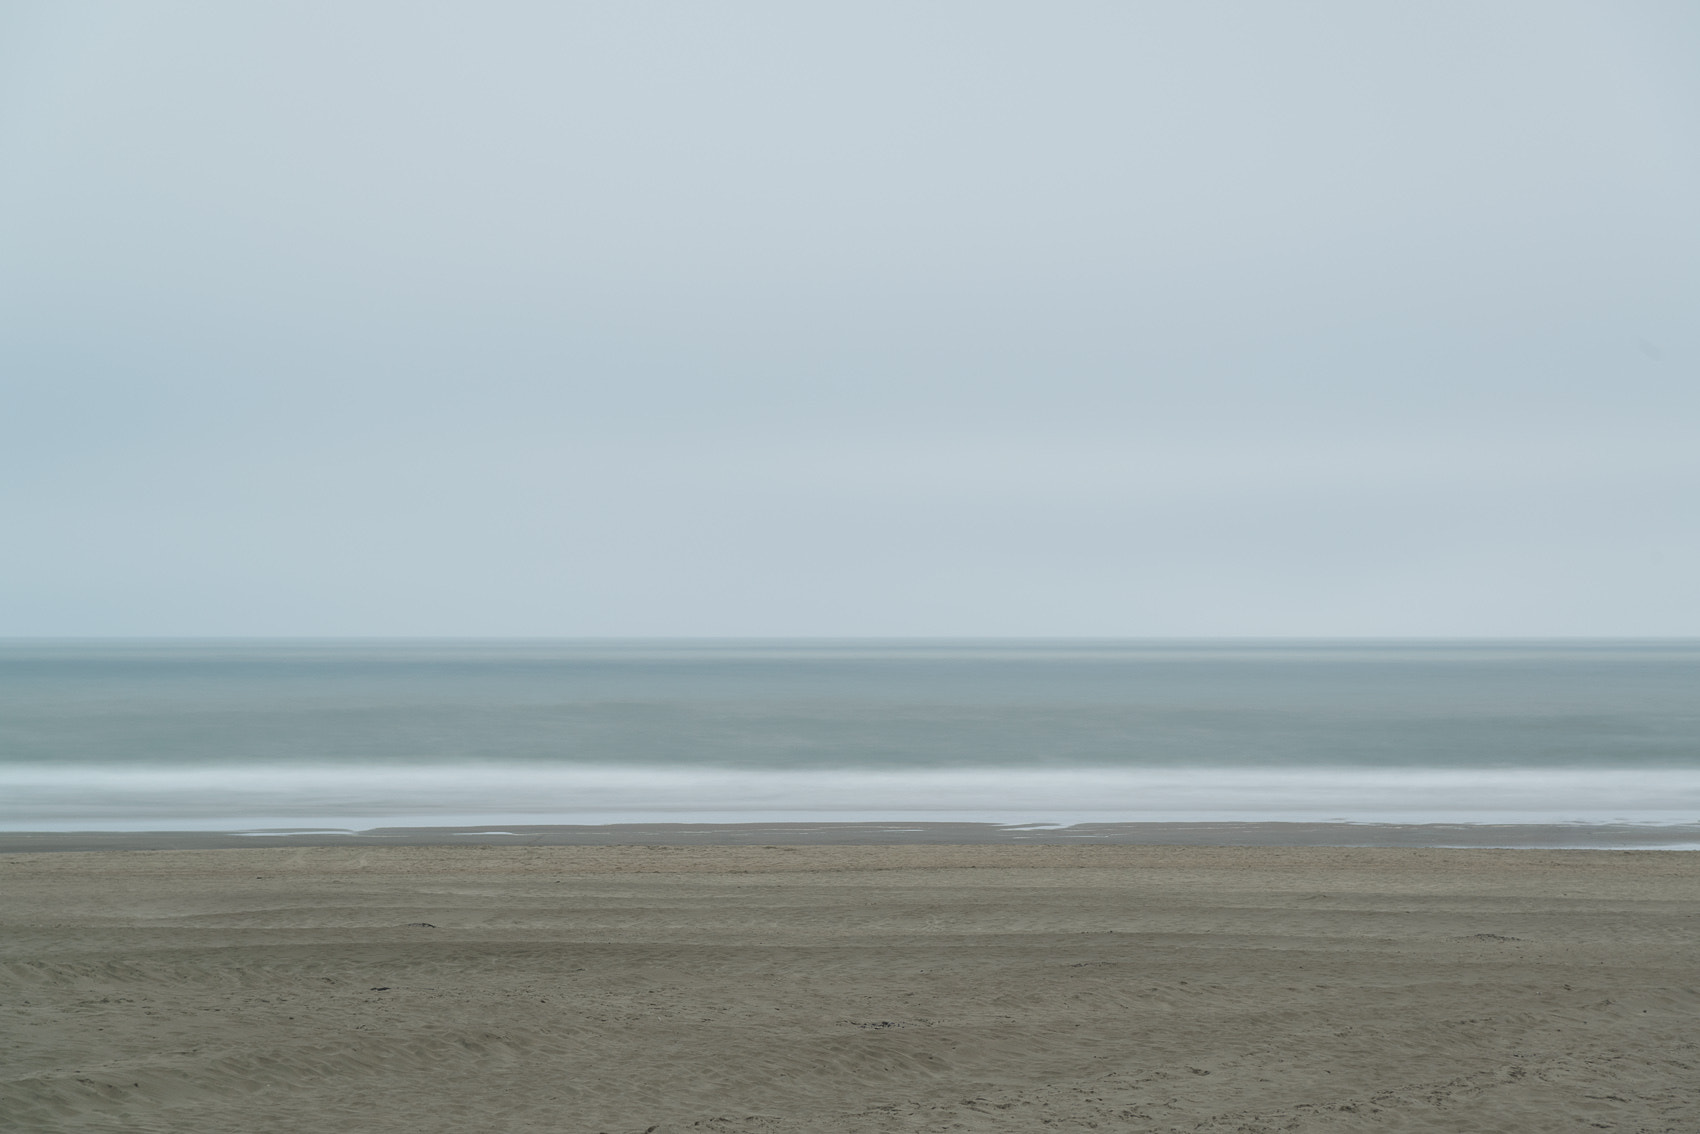 Photograph Ocean Beach Stopped by Mike Wiacek on 500px